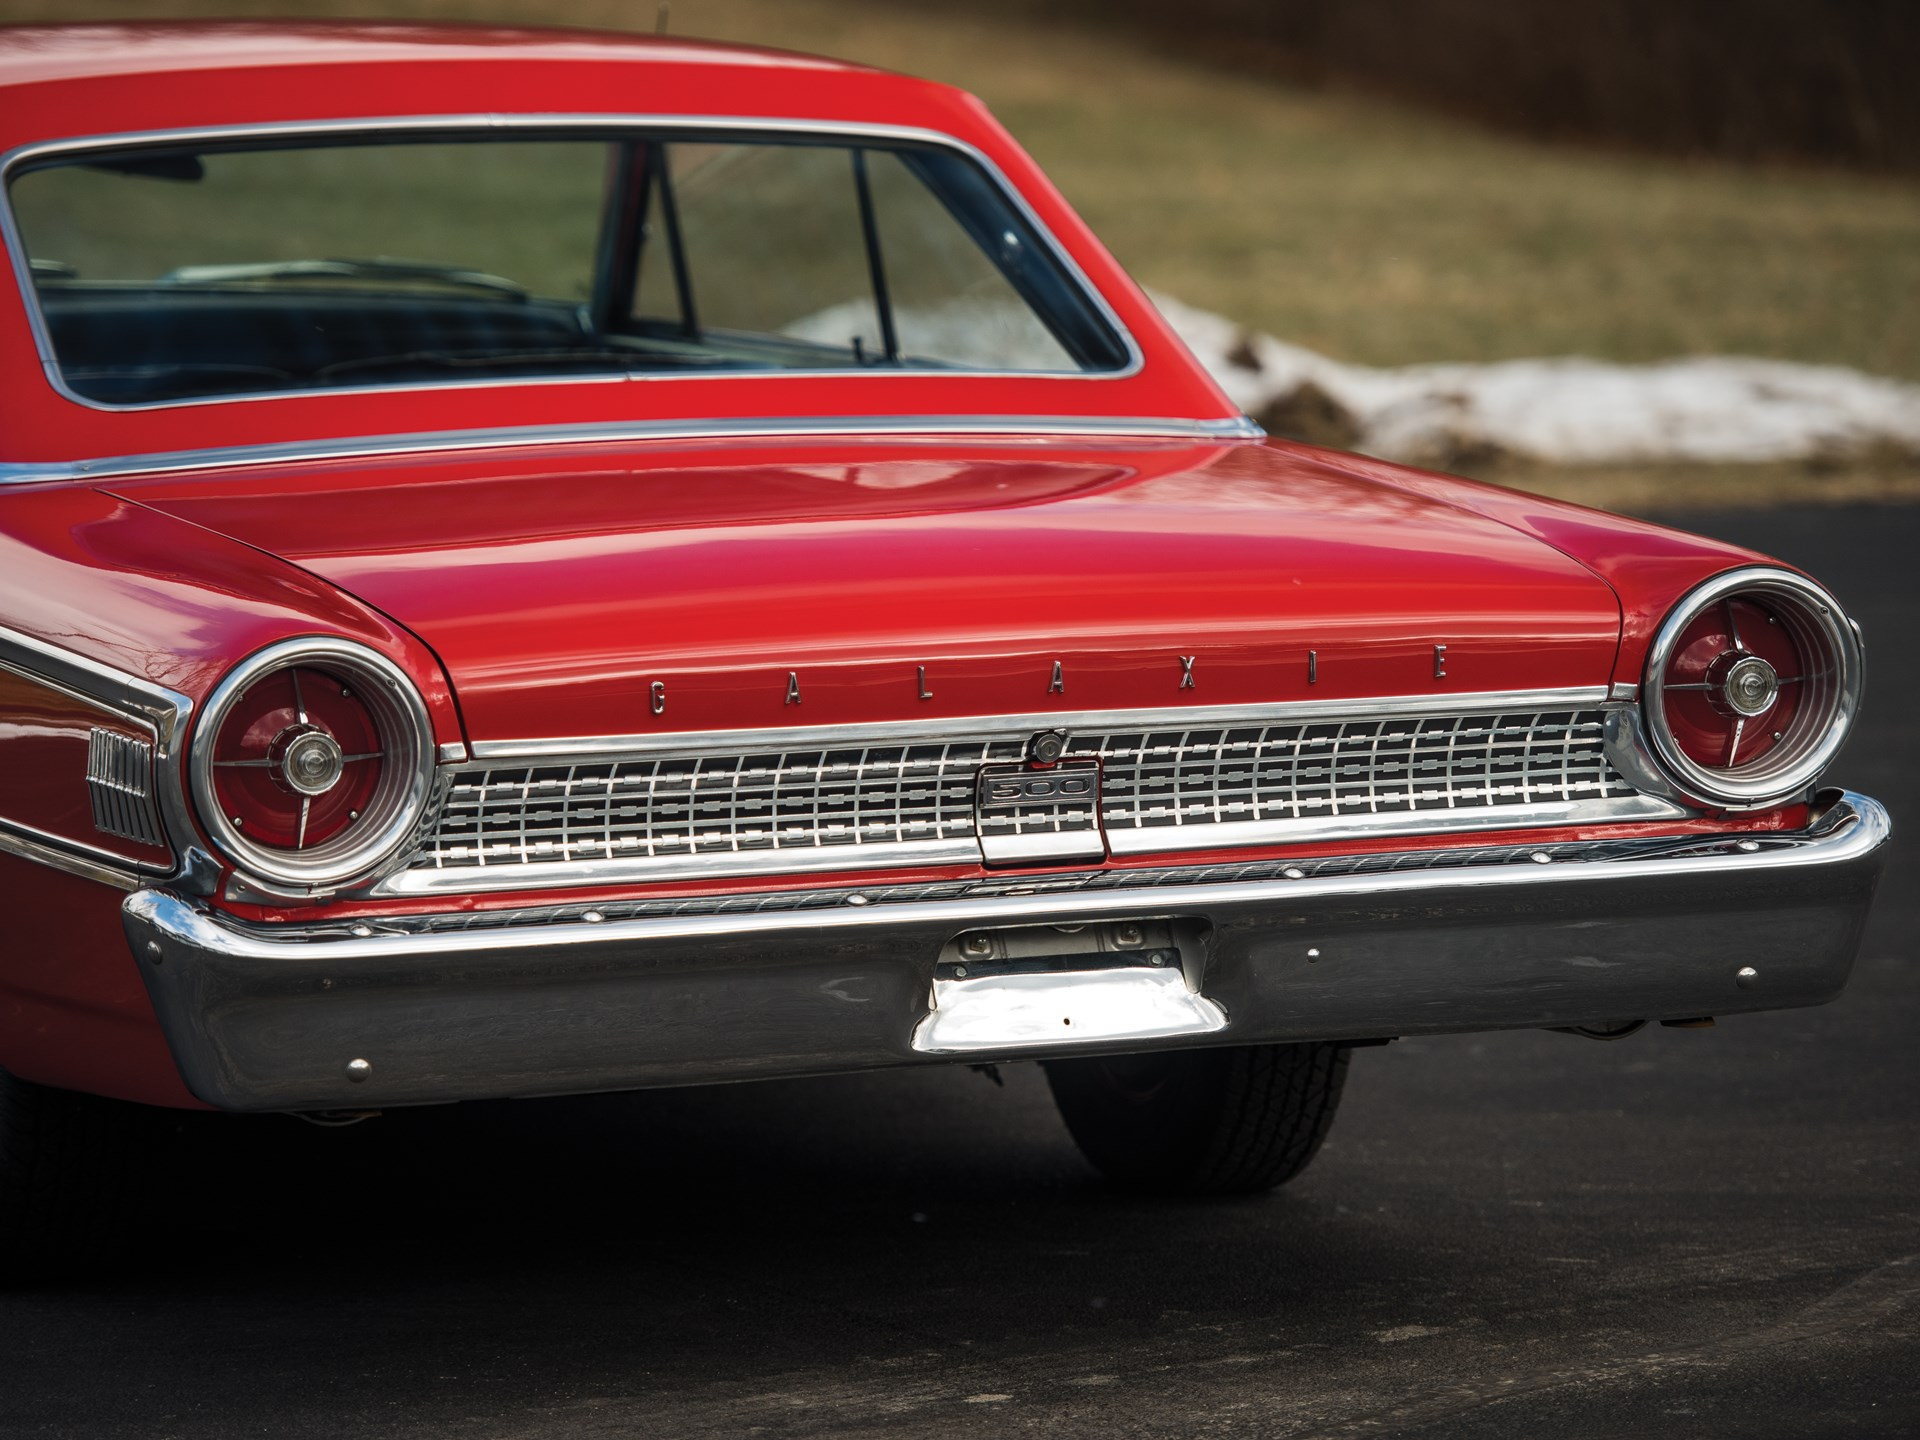 RM Sotheby's - 1963 Ford Galaxie 500 XL 'R-Code' Hardtop